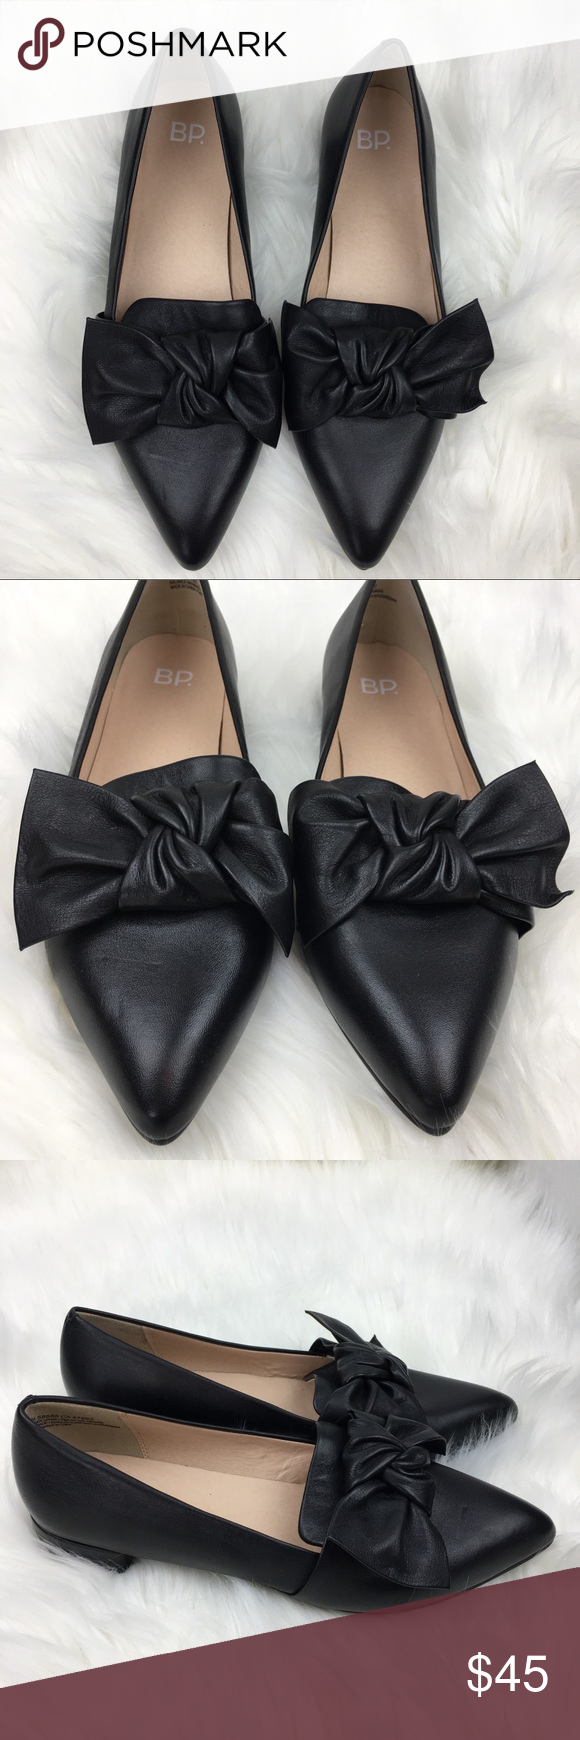 ce061699dd5 NWOB BP. Black Leather Kari Bow Loafer BP. Kari bow loafer New without box